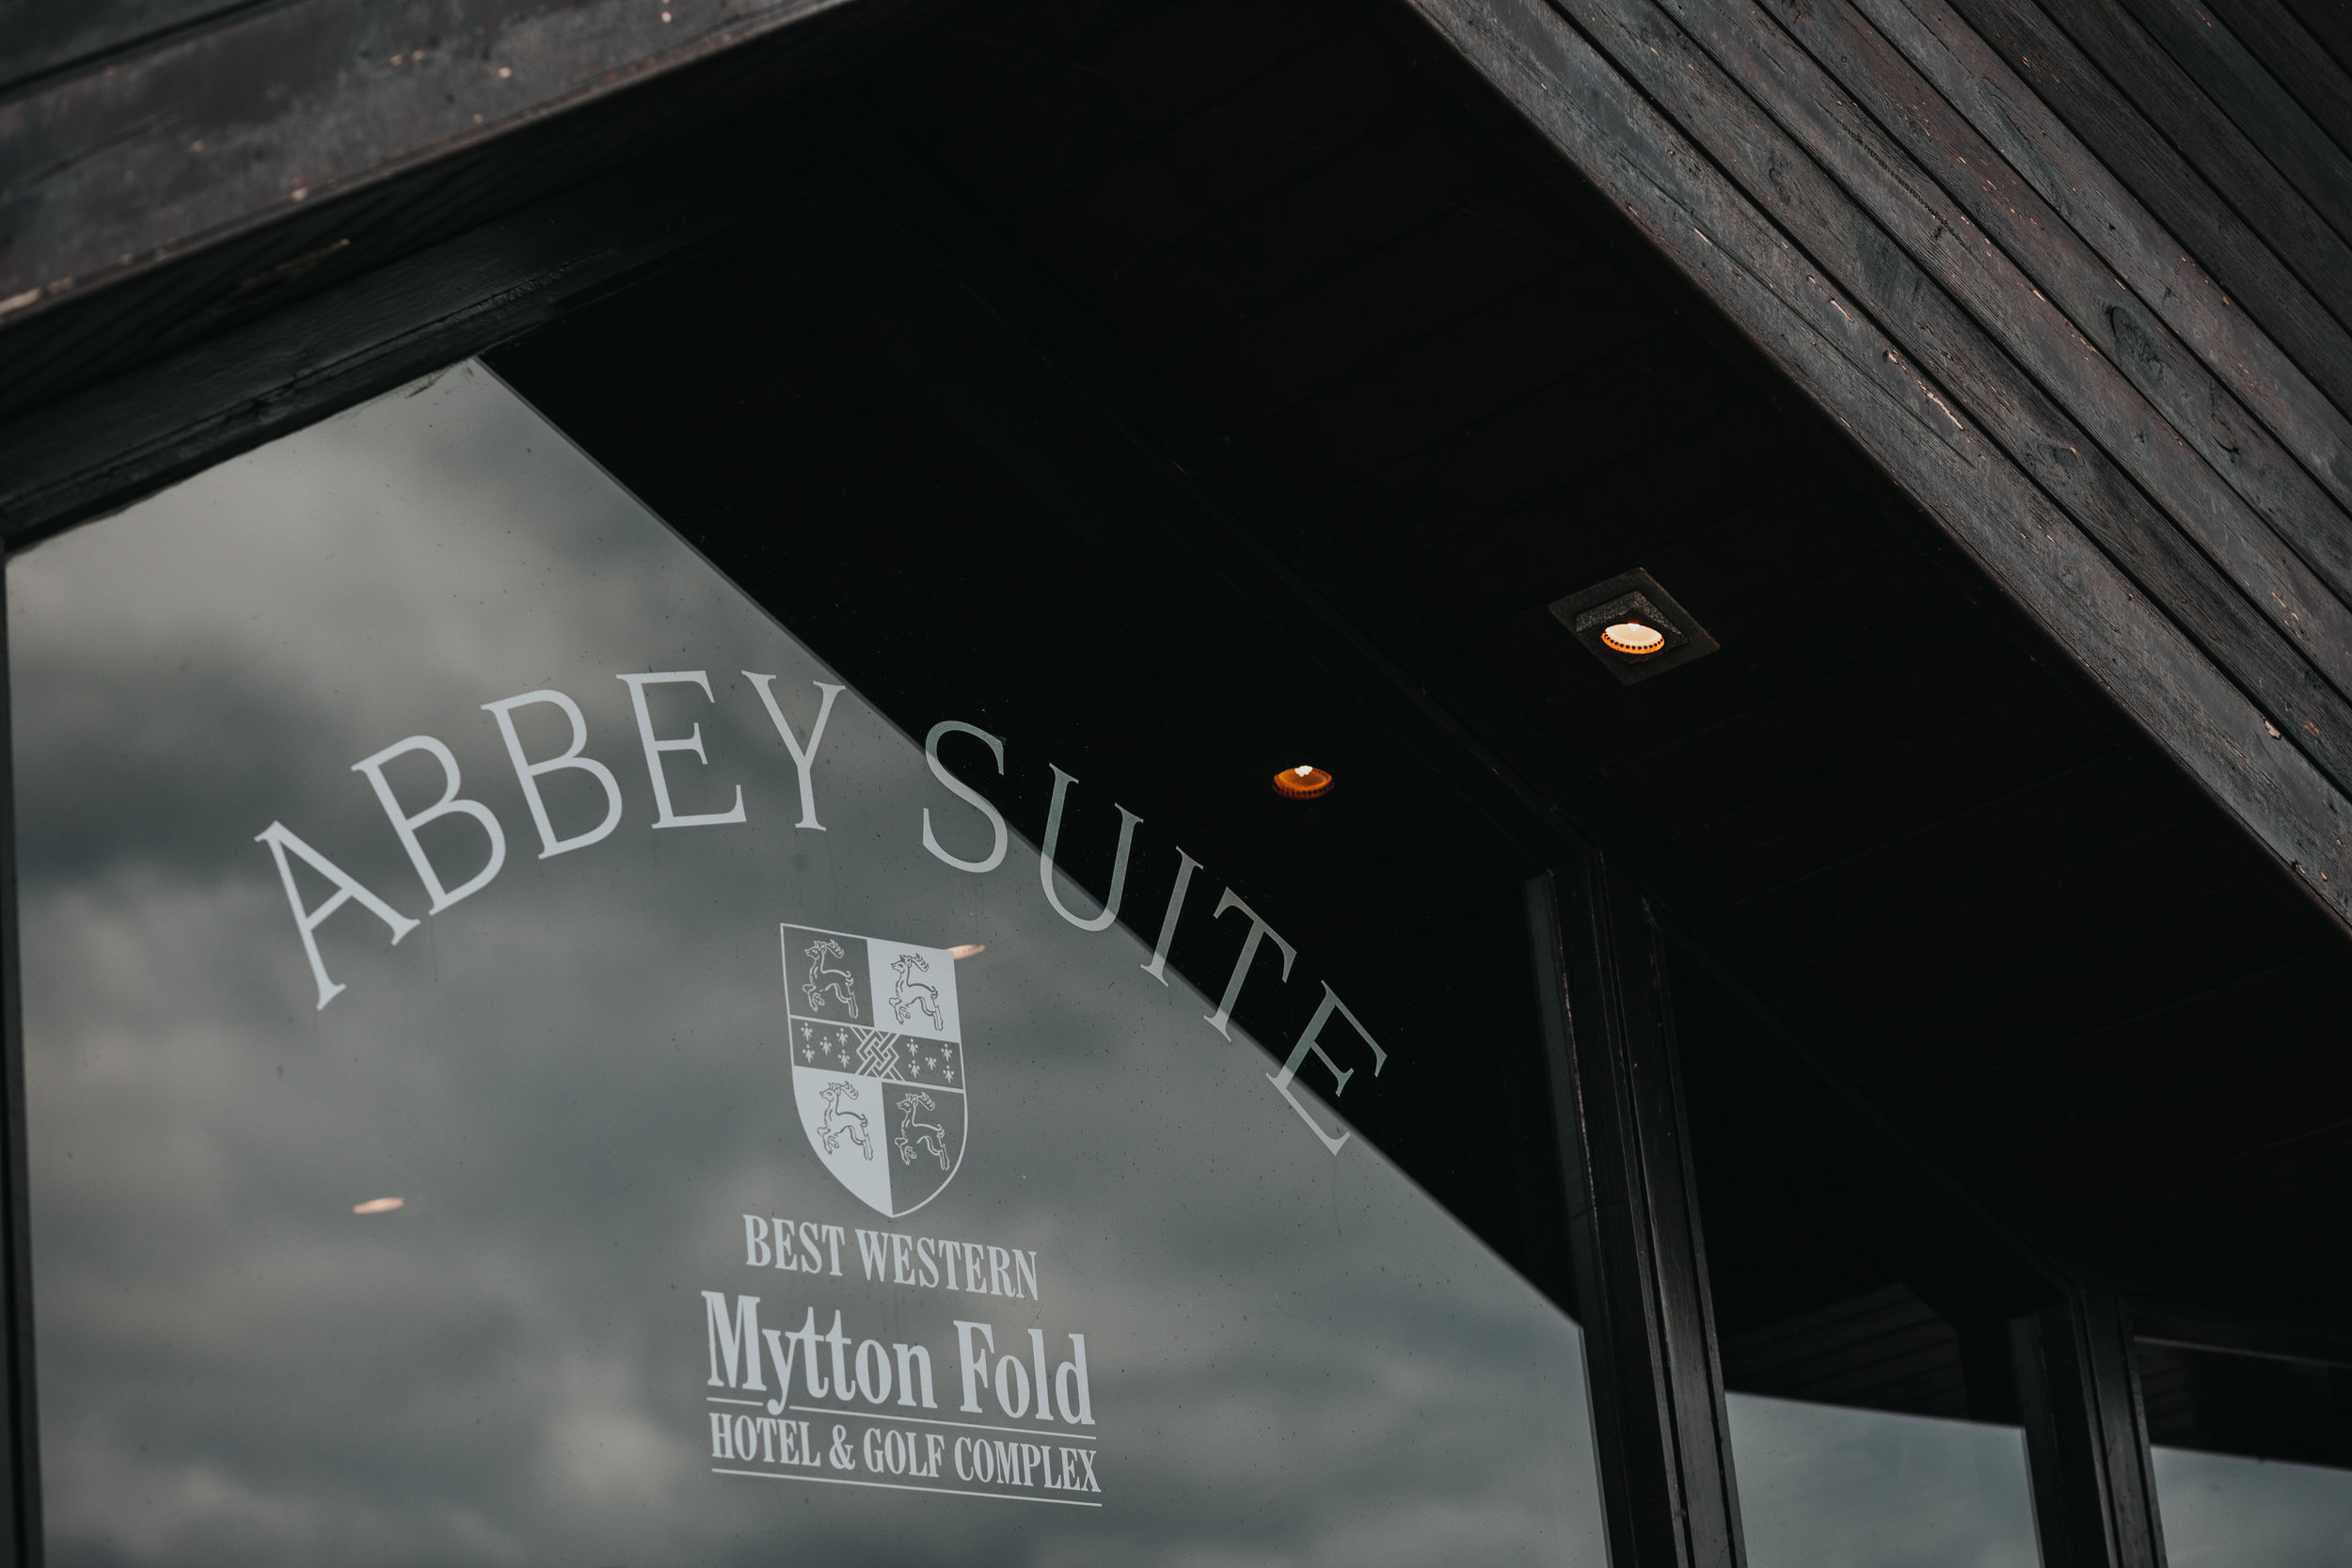 Abbey Suite Mytton Fold etched on a glass window.